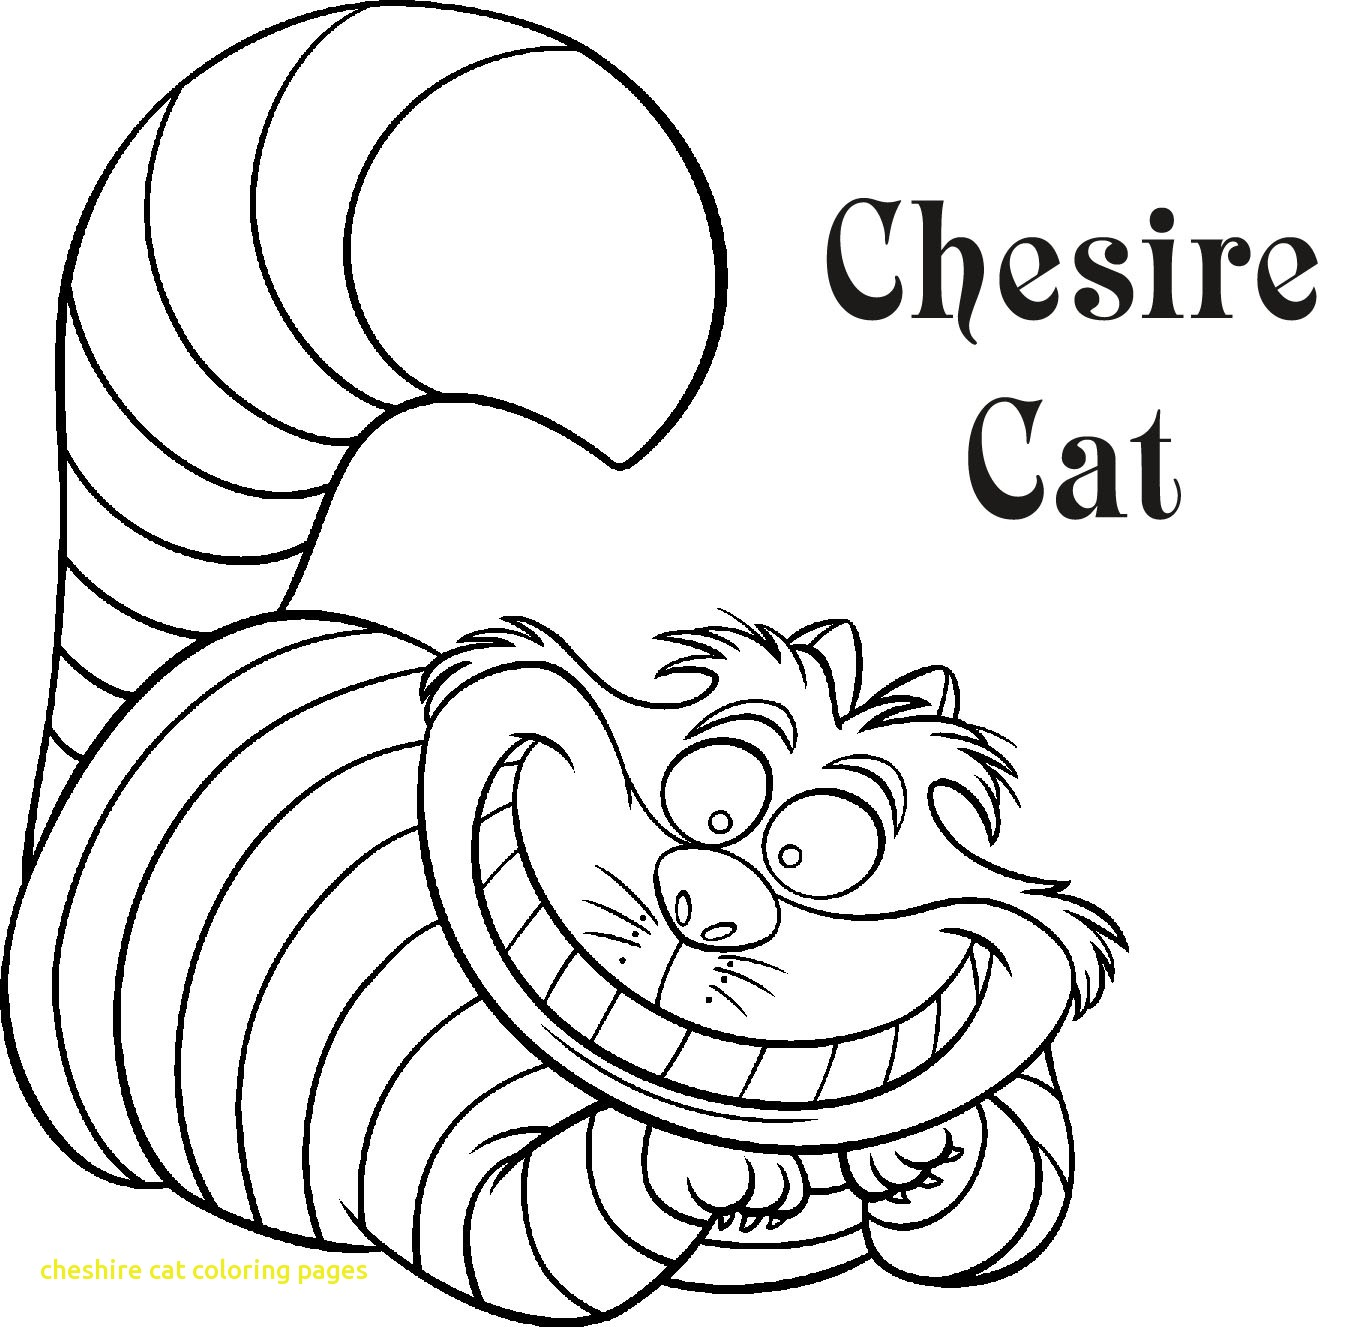 Cheshire Cat Coloring Pages at GetDrawings.com | Free for ...